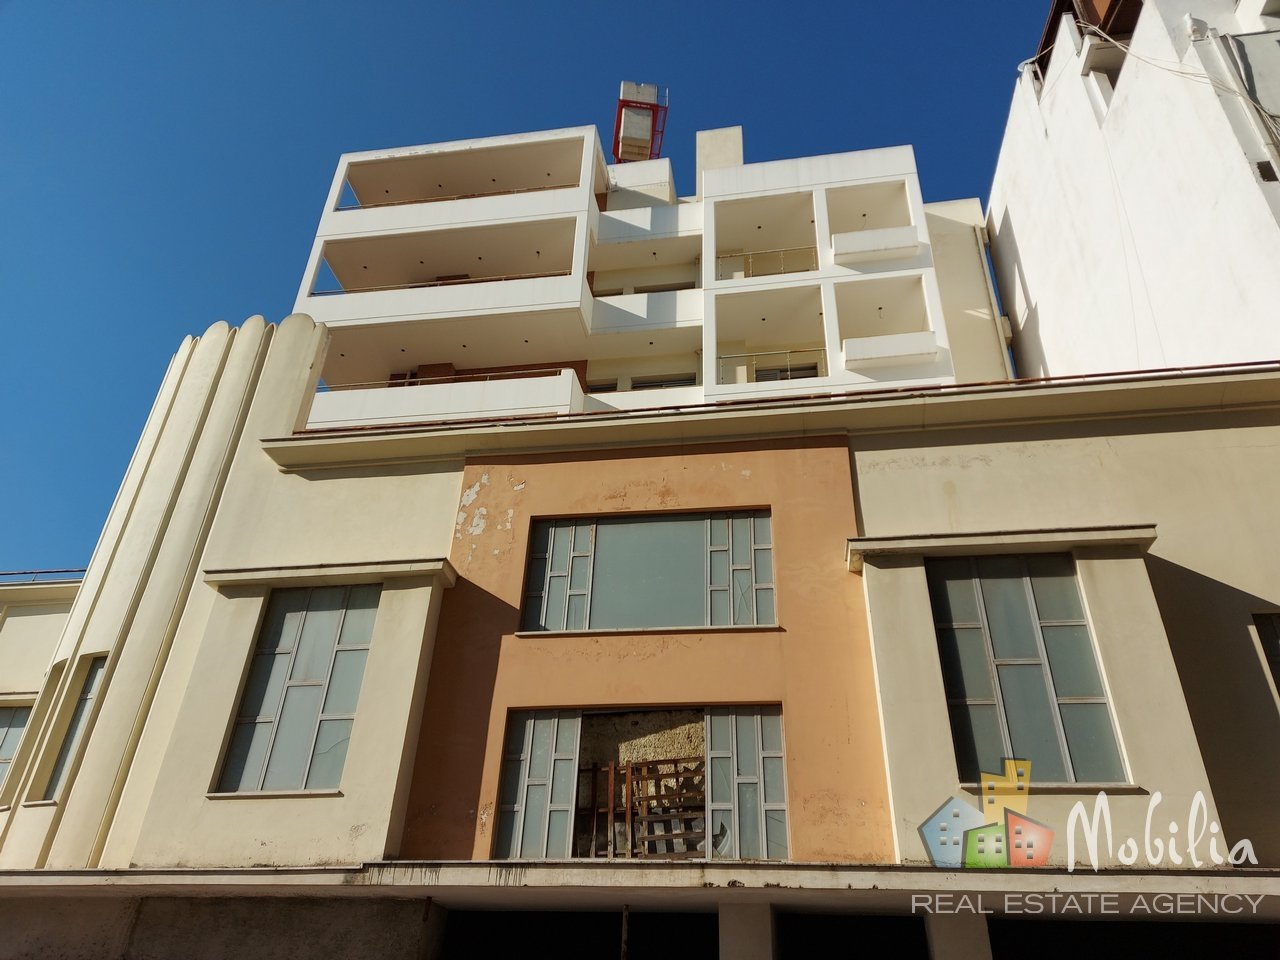 Apartment Buiding for Sale - Center of Athens